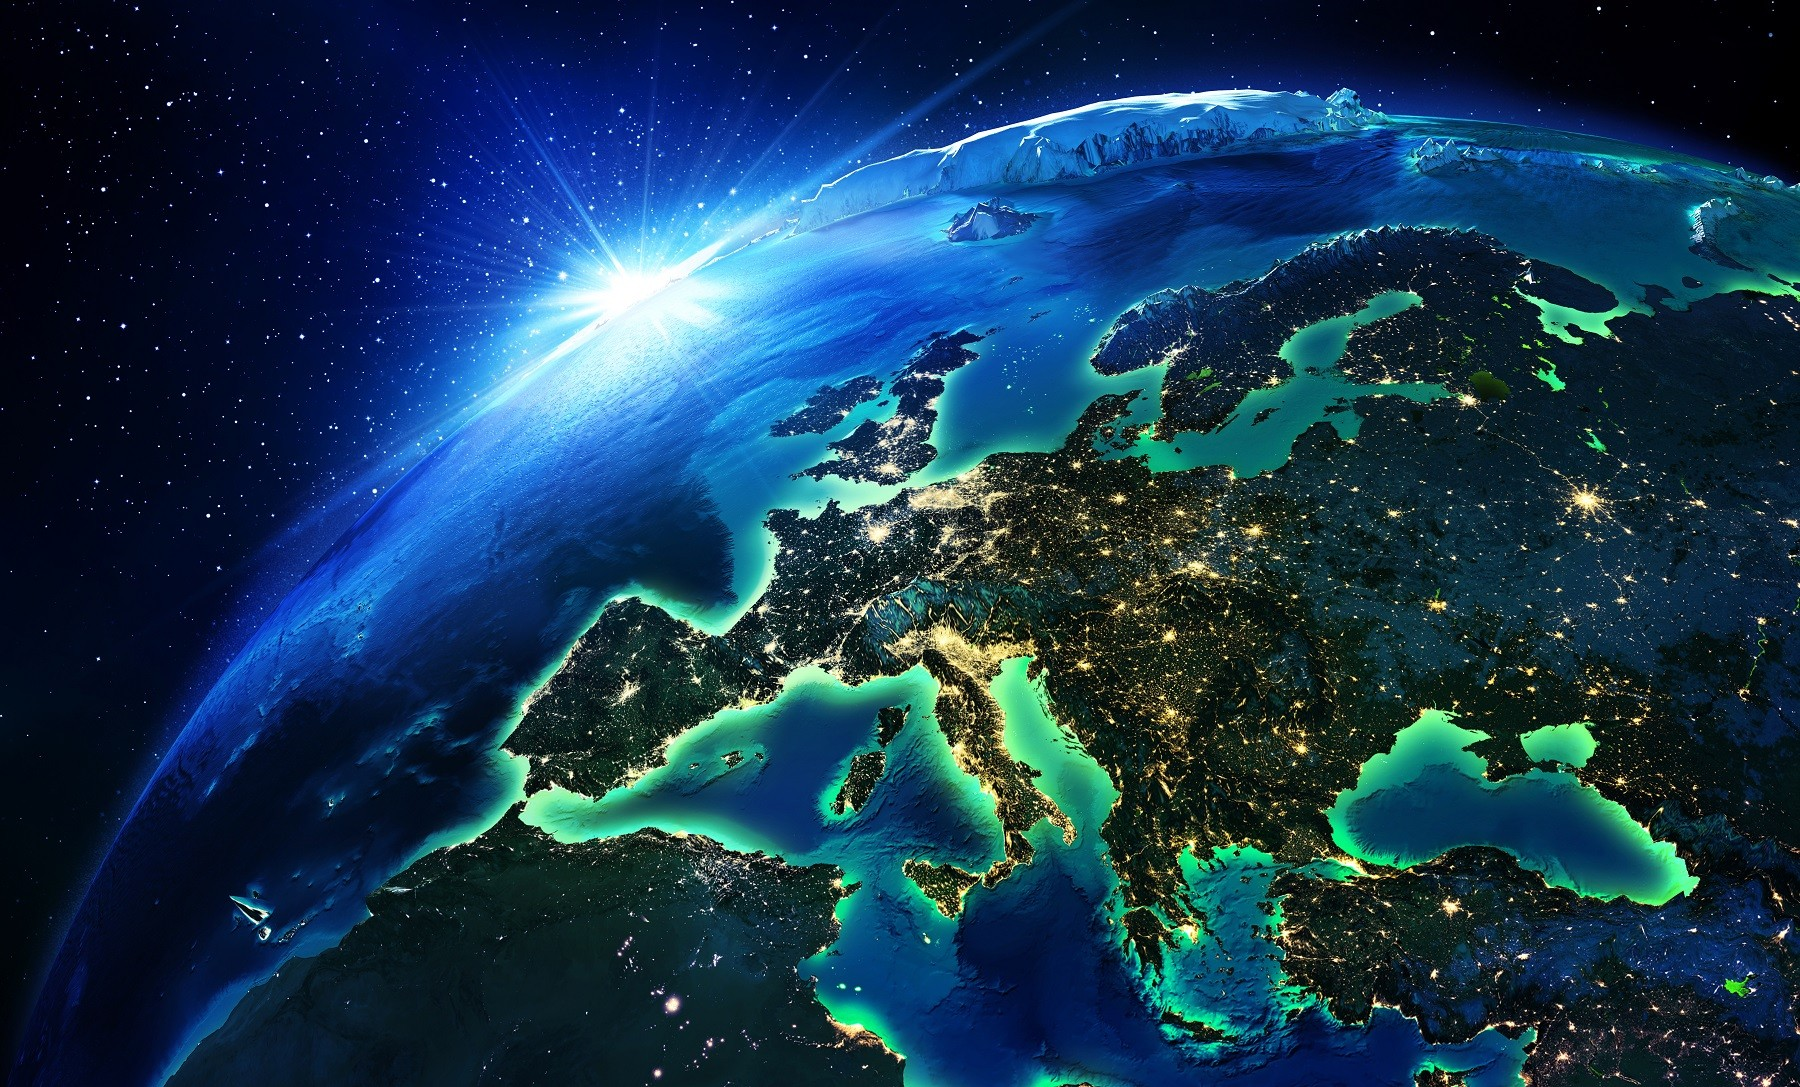 New consortium aims to develop value-driven cyber security in Europe TechNative